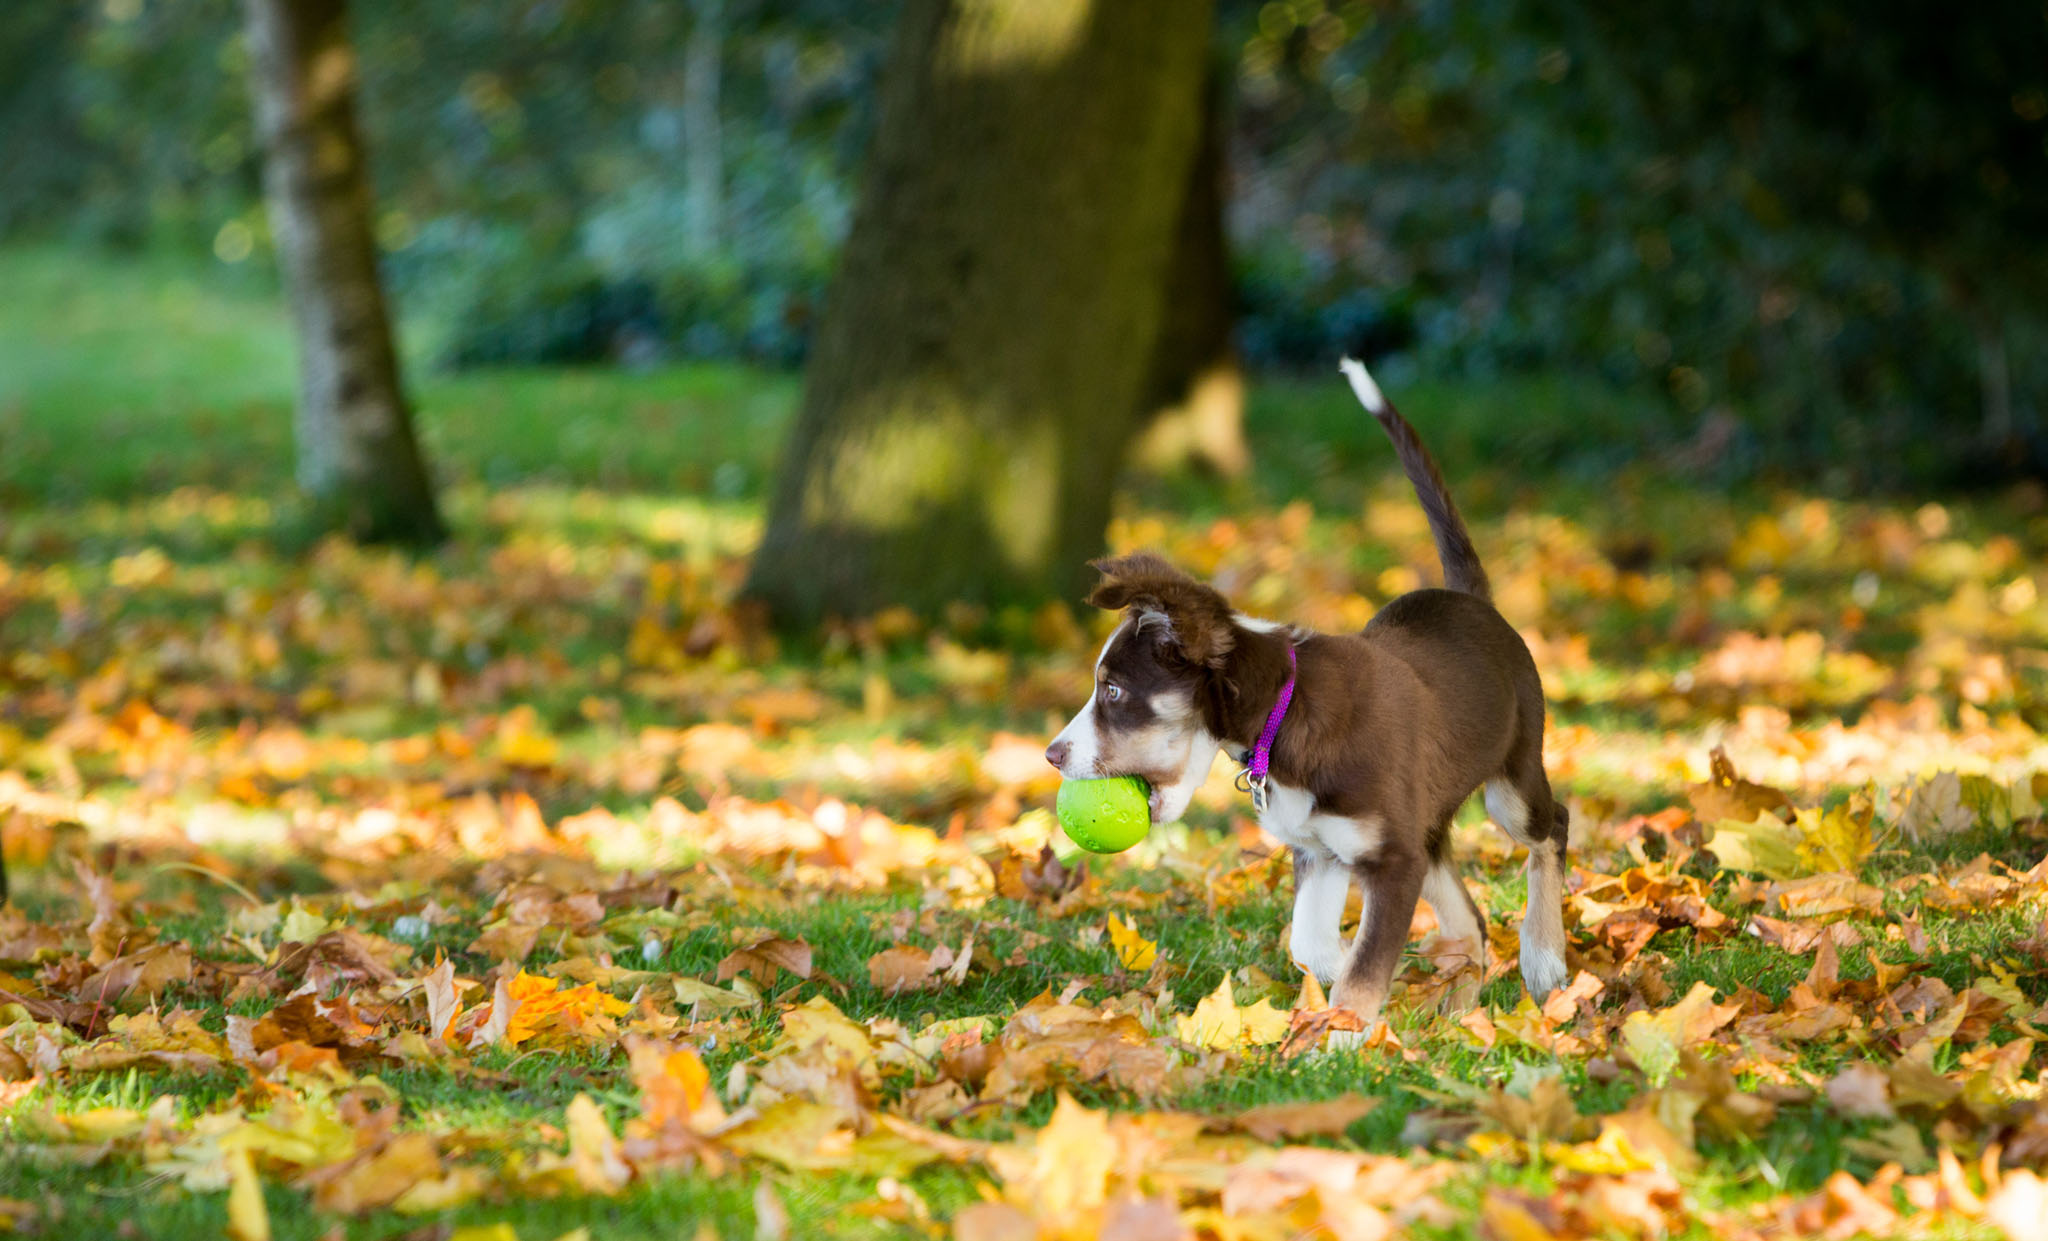 Pet portrait photography of a sheep dog puppy with her tennis ball in autumn leaves in Lymm, Cheshire